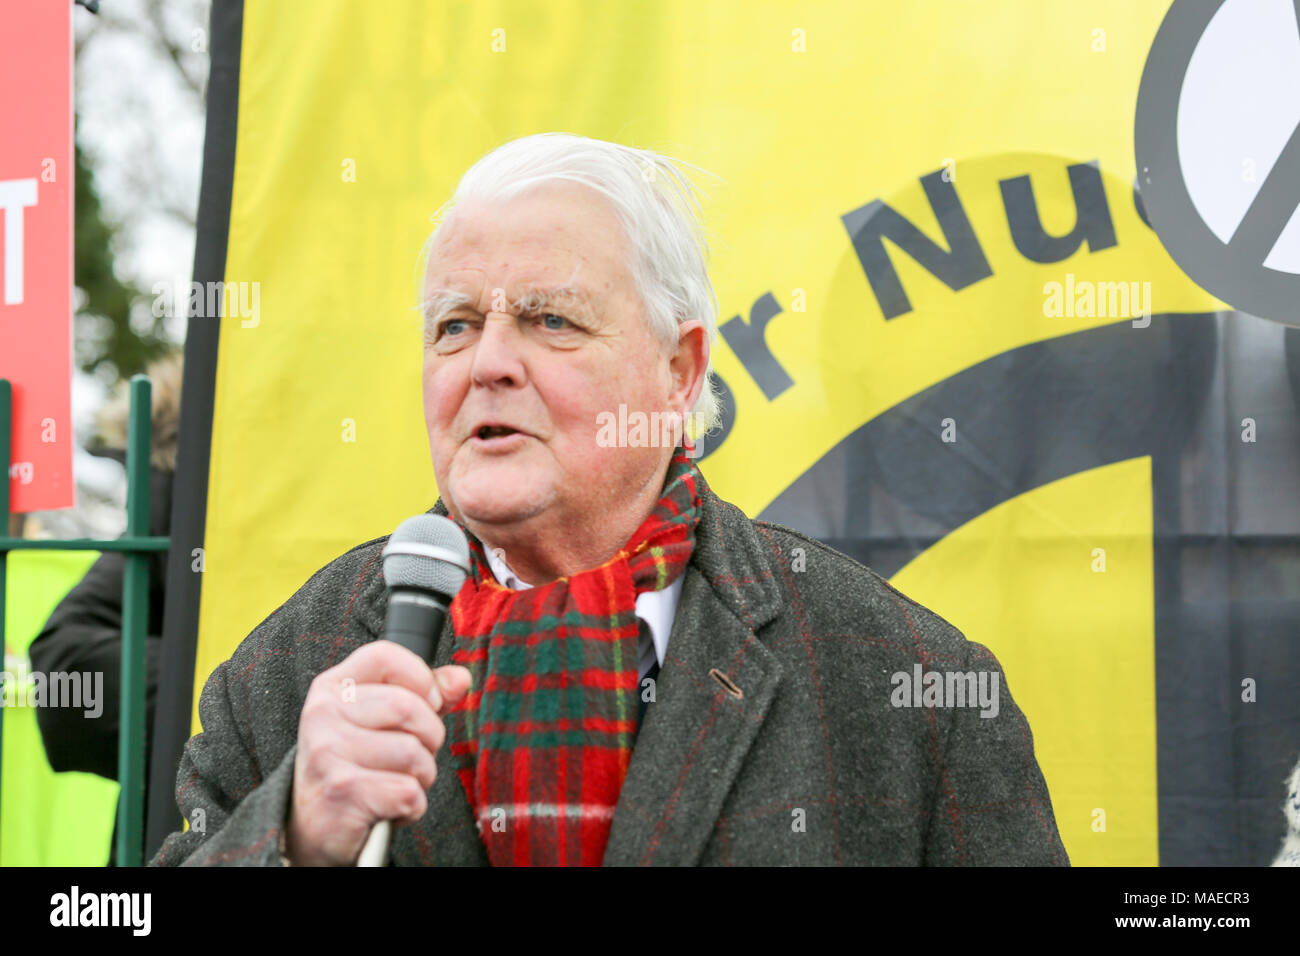 1st April, 2018. Bruce Kent speaks at the rally. CND celebrate the 60th anniversary of the first Aldermaston march - an event that mobilised thousands against the Bomb and shaped radical protest for generations. Penelope Barritt/Alamy Live News - Stock Image